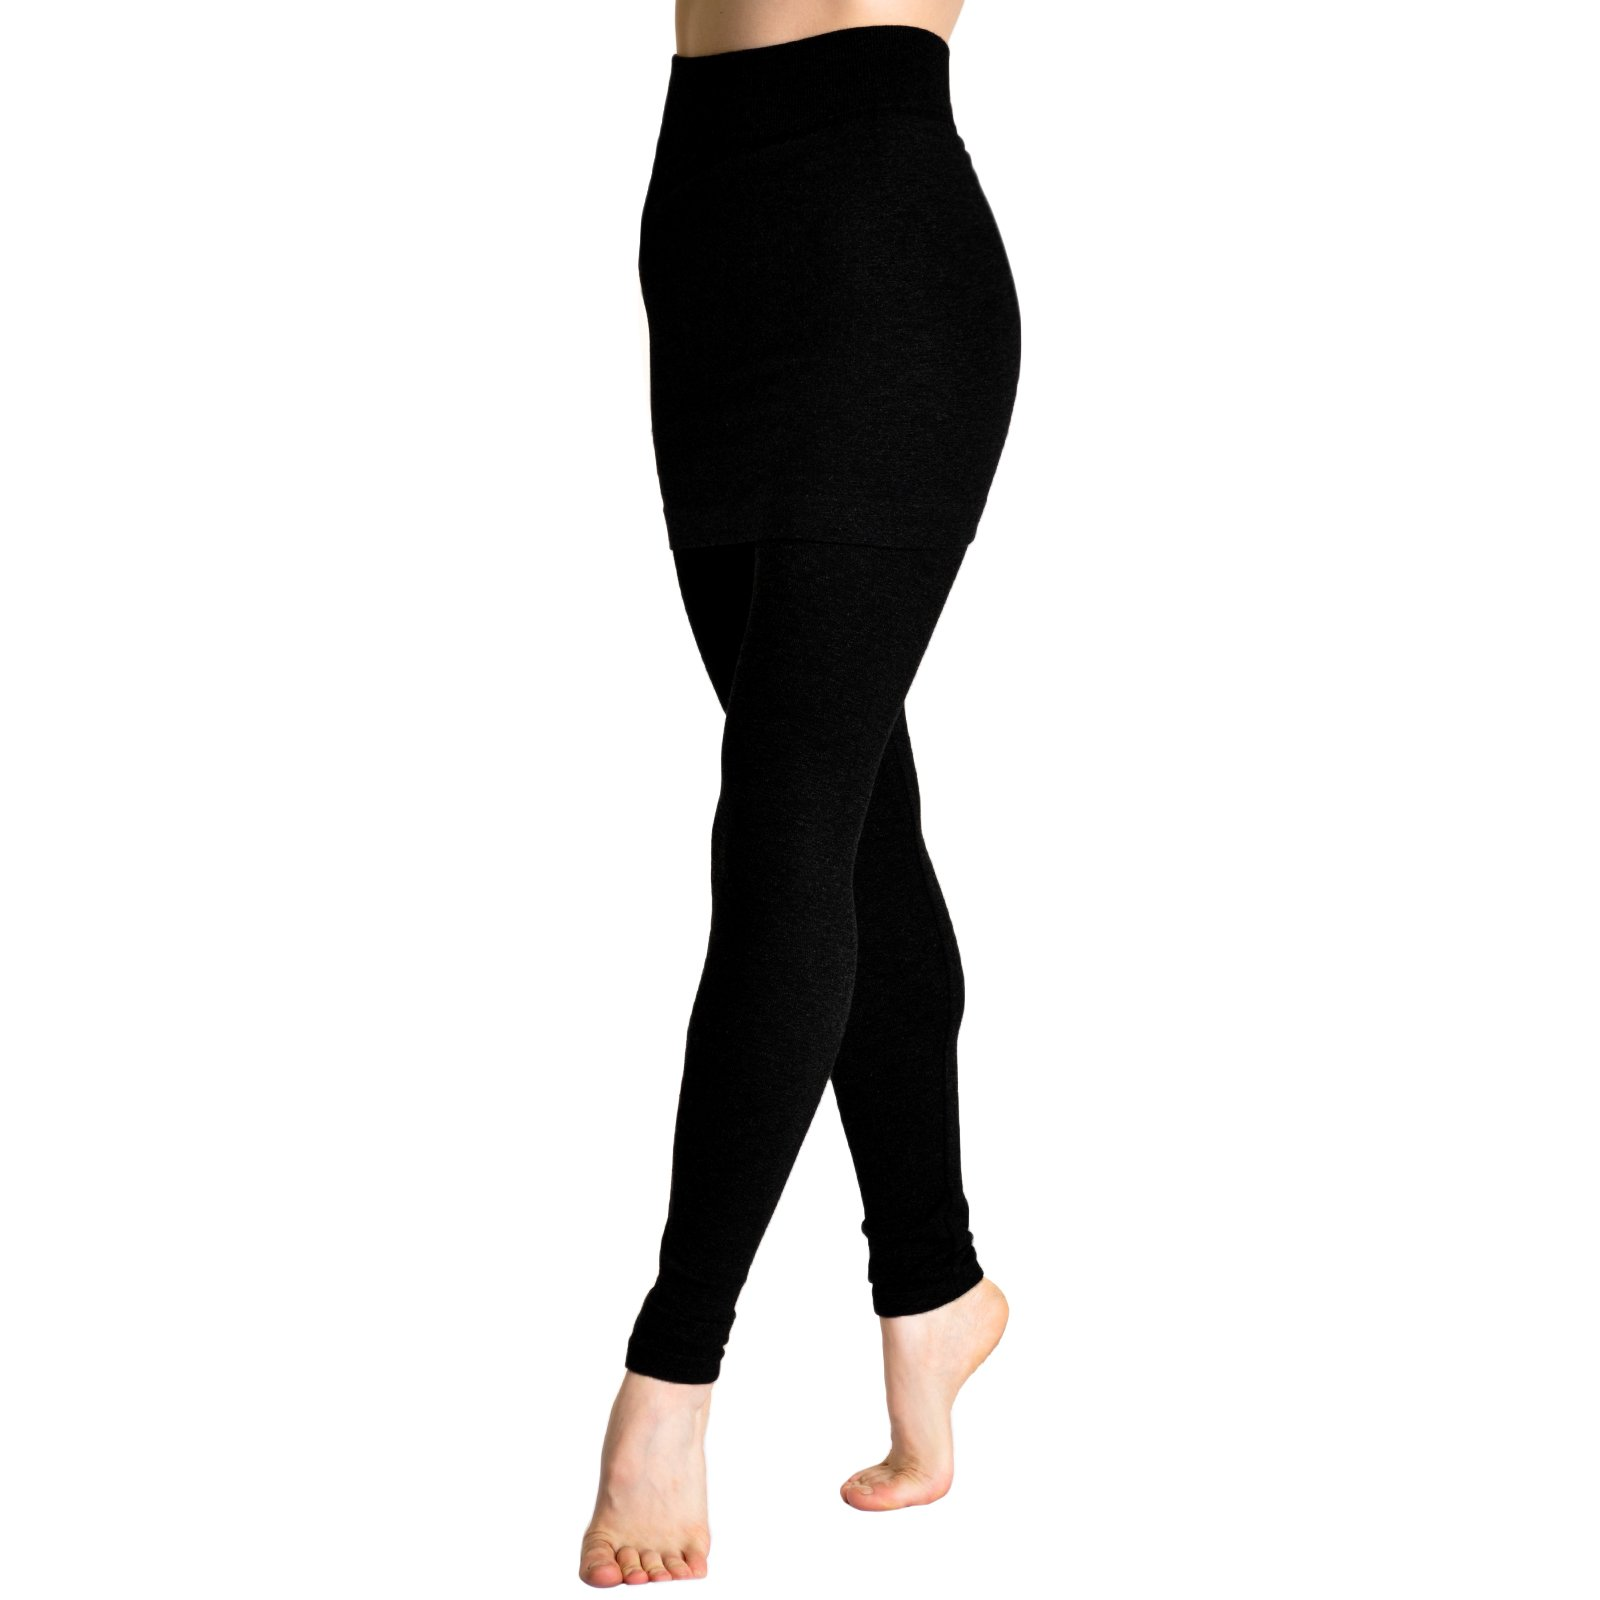 Angelina Cotton Blend Mini Skirt Leggings 021_Black, one size